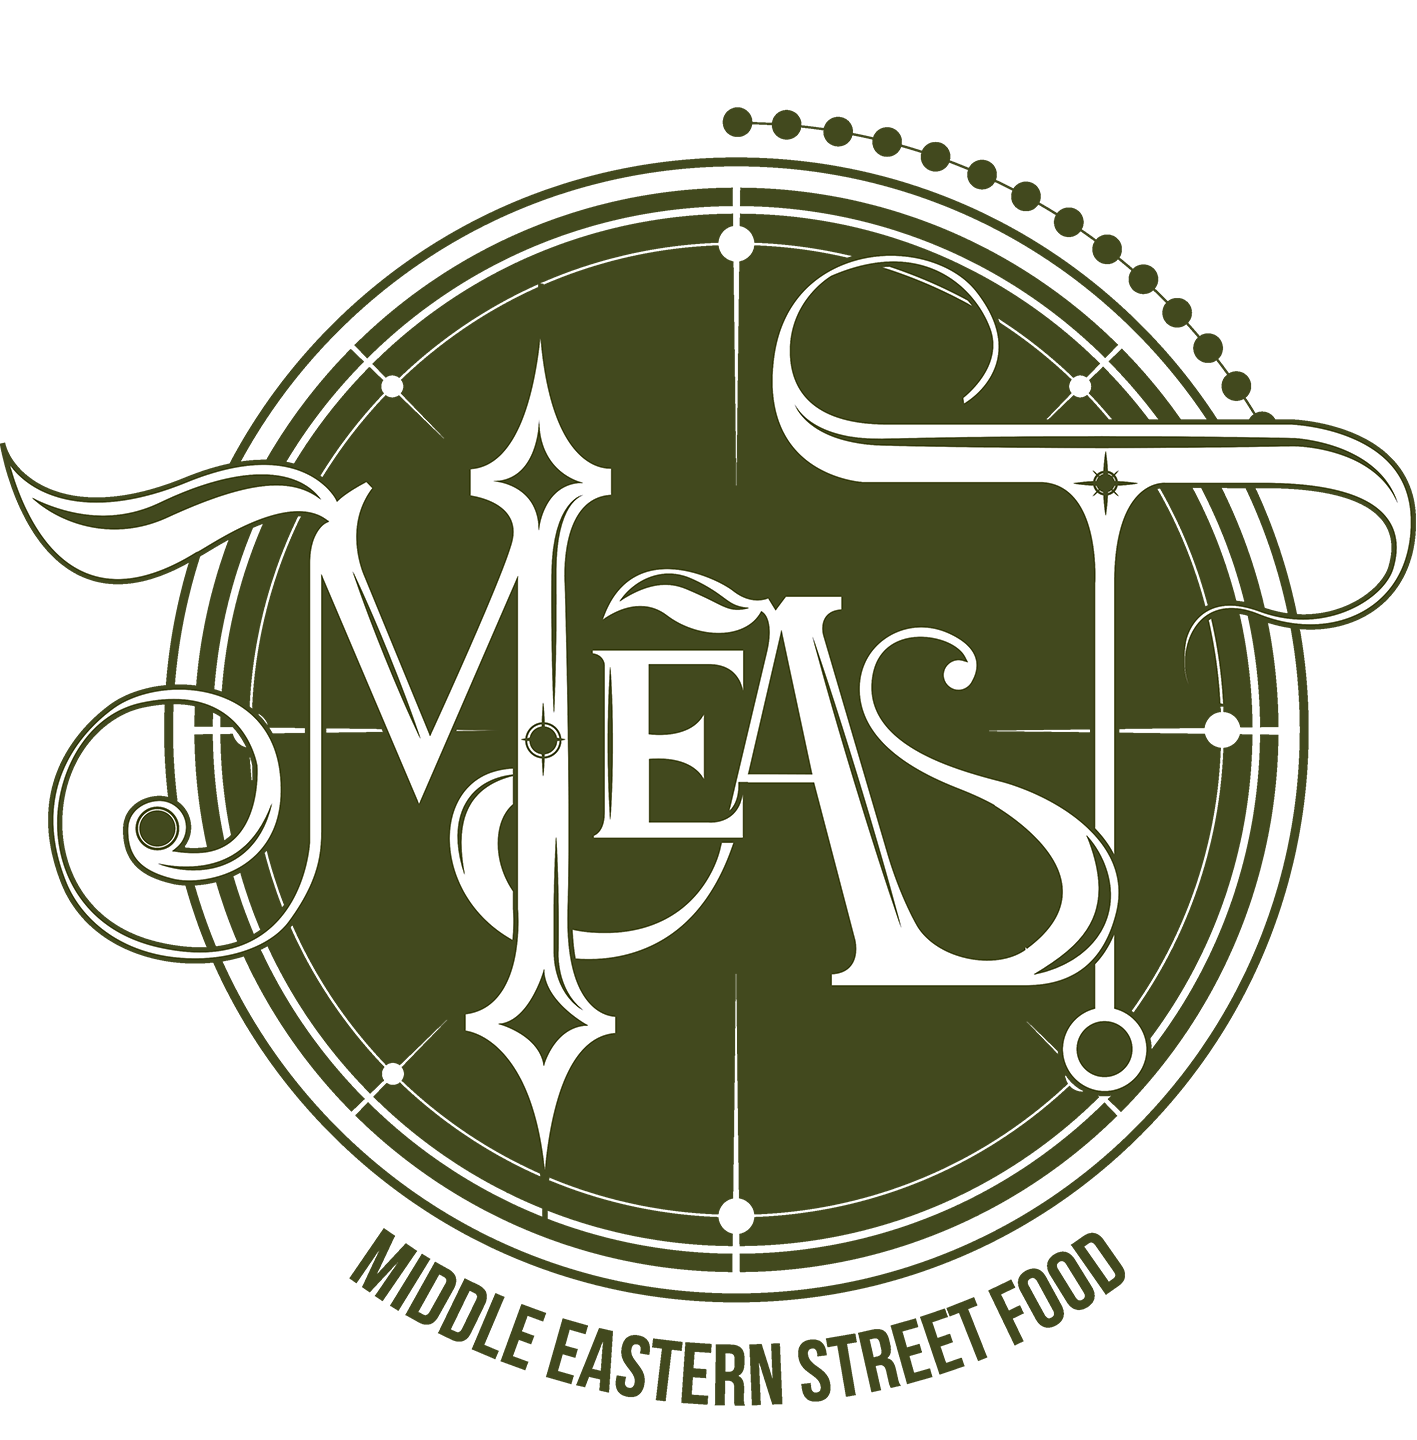 MEAST - Middle Eastern Street Food